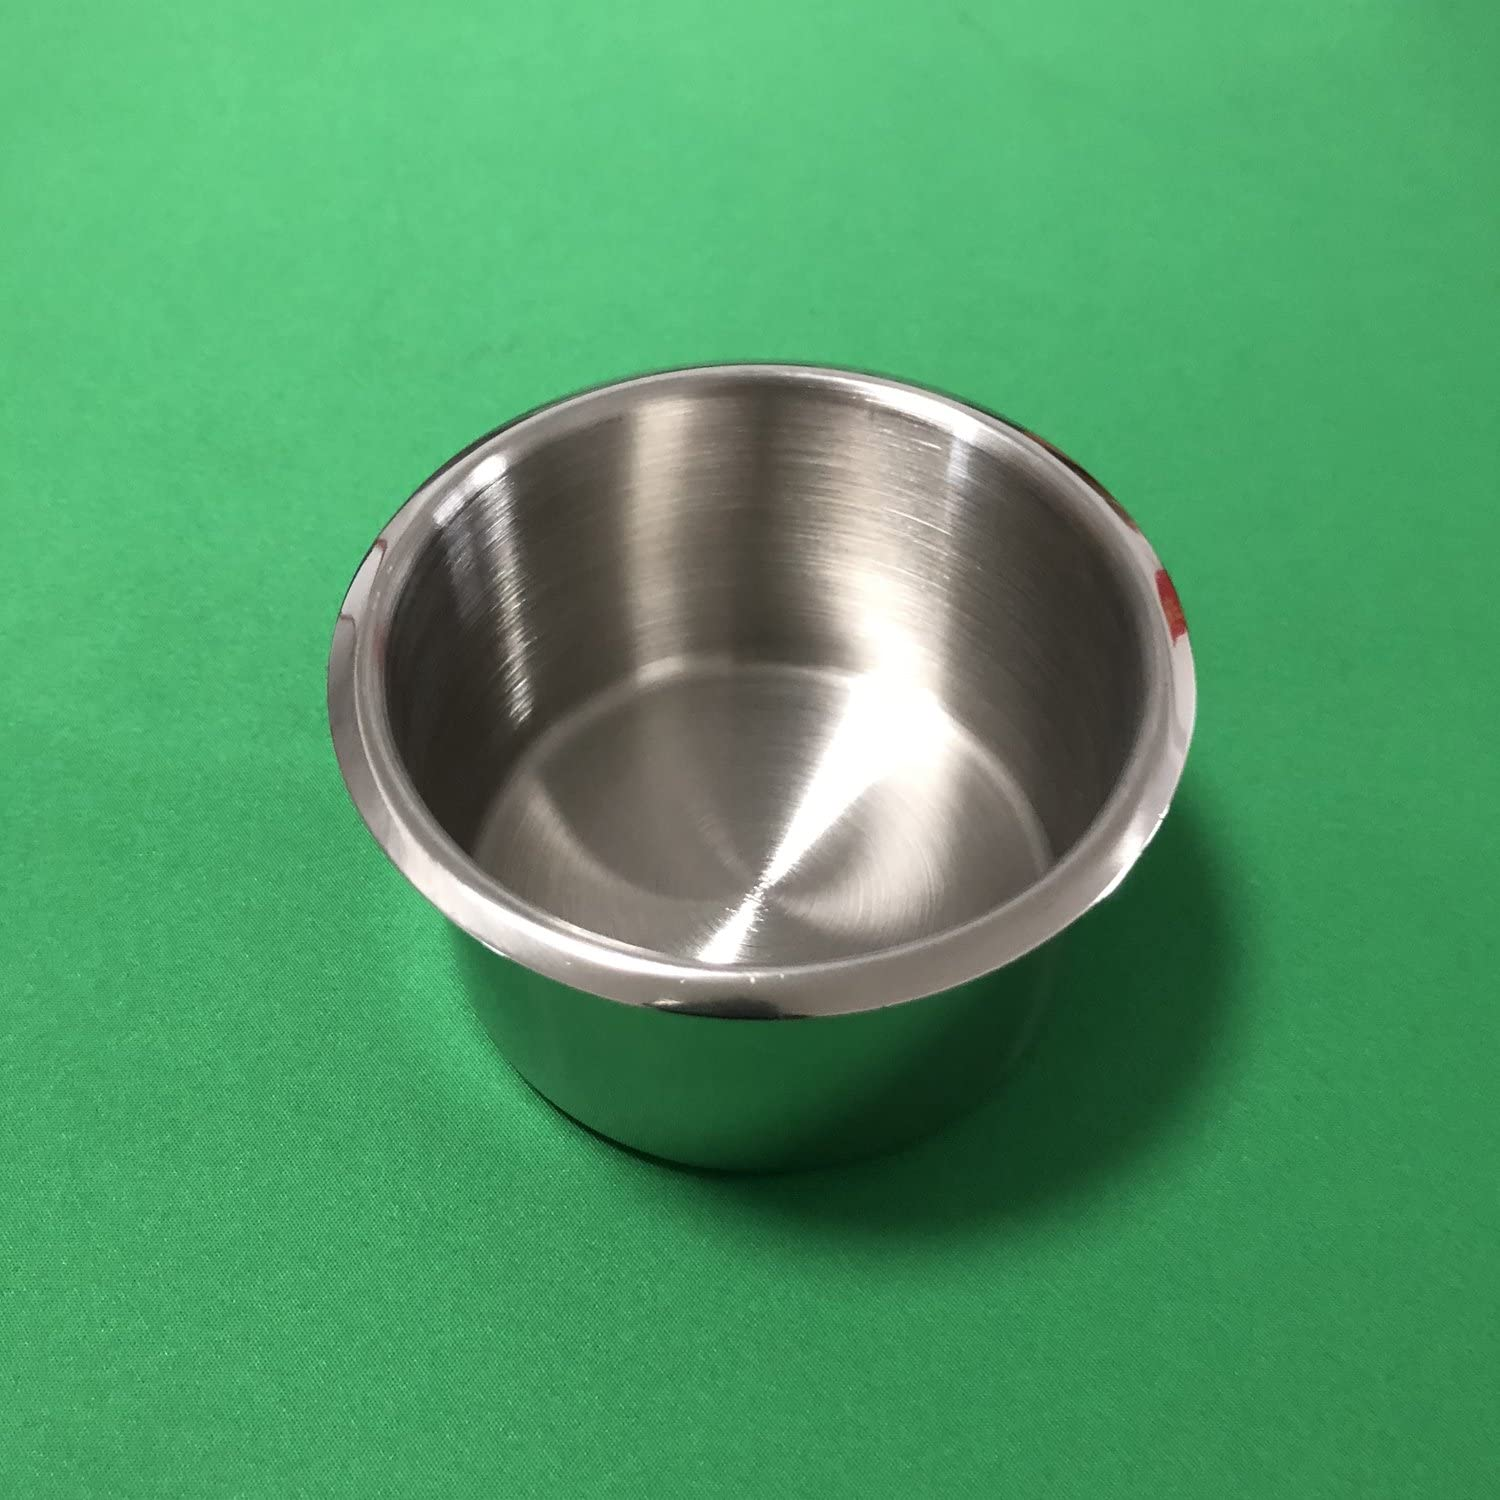 Jumbo YH Poker Stainless Steel Drop-in Cup Holder